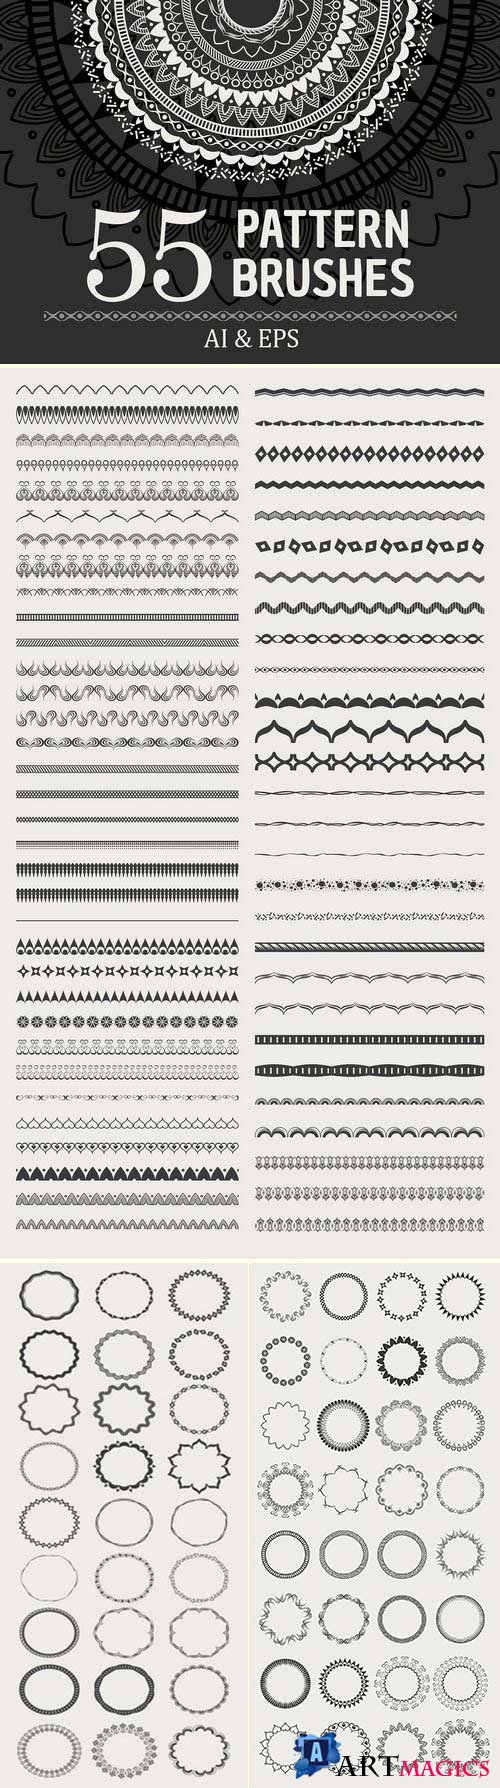 CM - 55 Vector Patterns Brushes 2915269